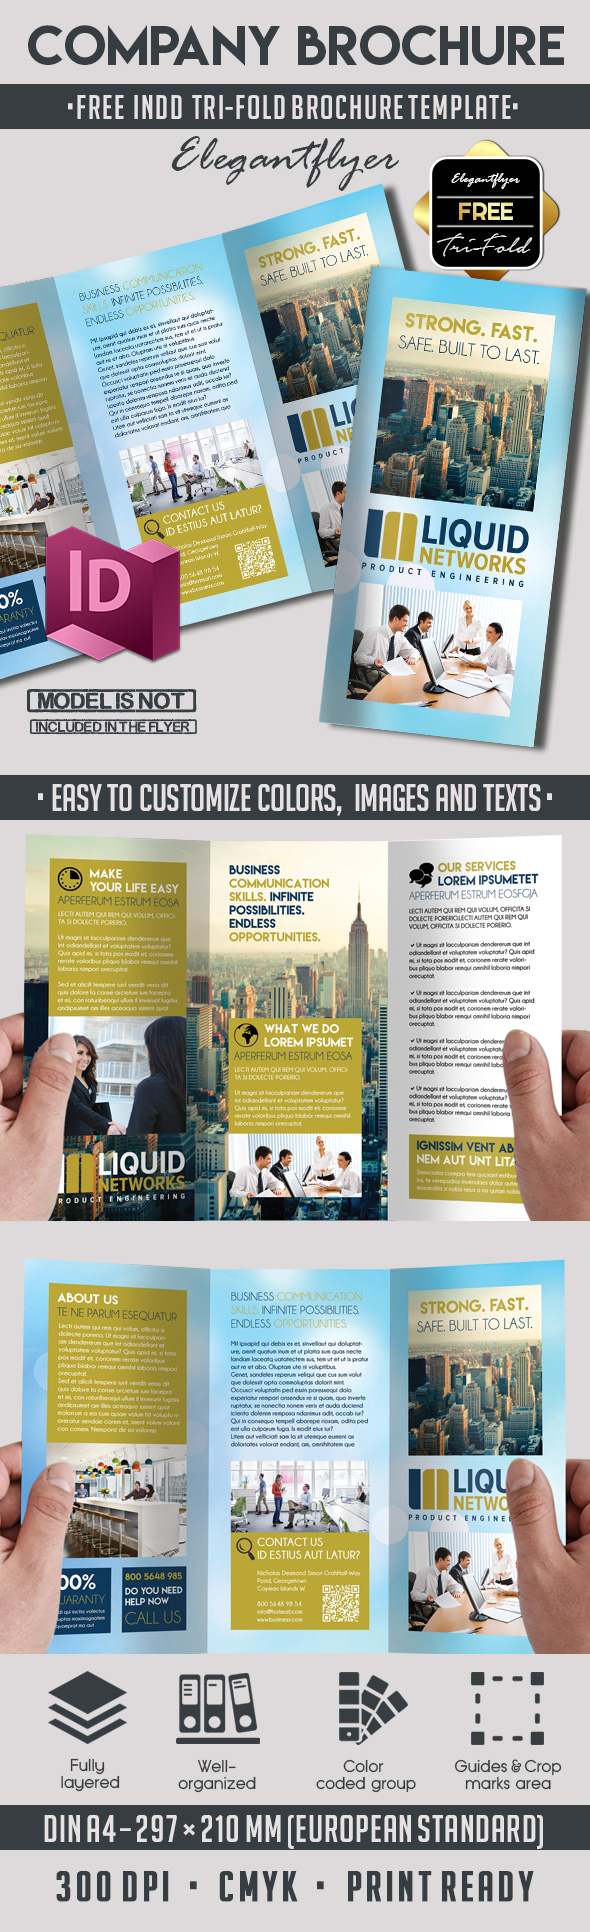 5 powerful free adobe indesign brochures templates by for Adobe brochure templates